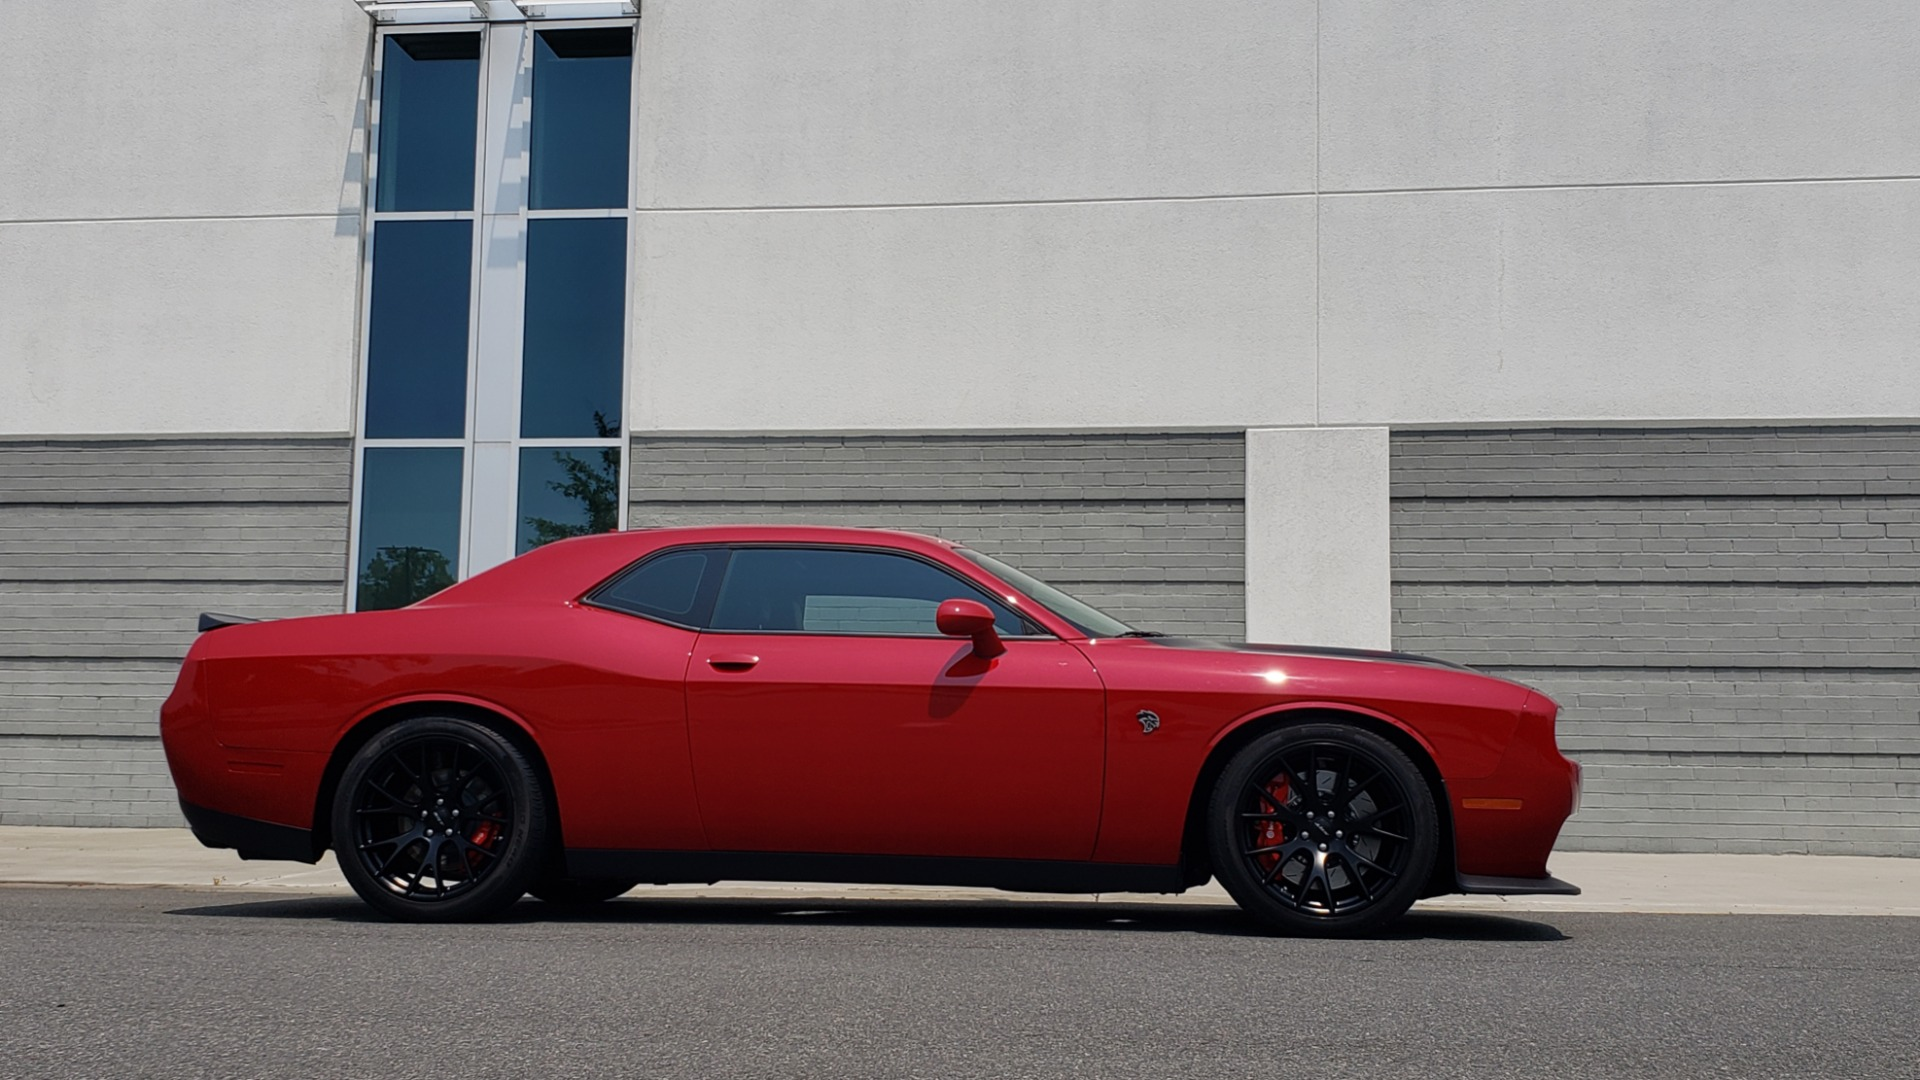 Used 2016 Dodge CHALLENGER SRT HELLCAT 707HP COUPE / AUTO / NAV / SUNROOF / H/K SND / REARVIEW for sale $60,995 at Formula Imports in Charlotte NC 28227 13